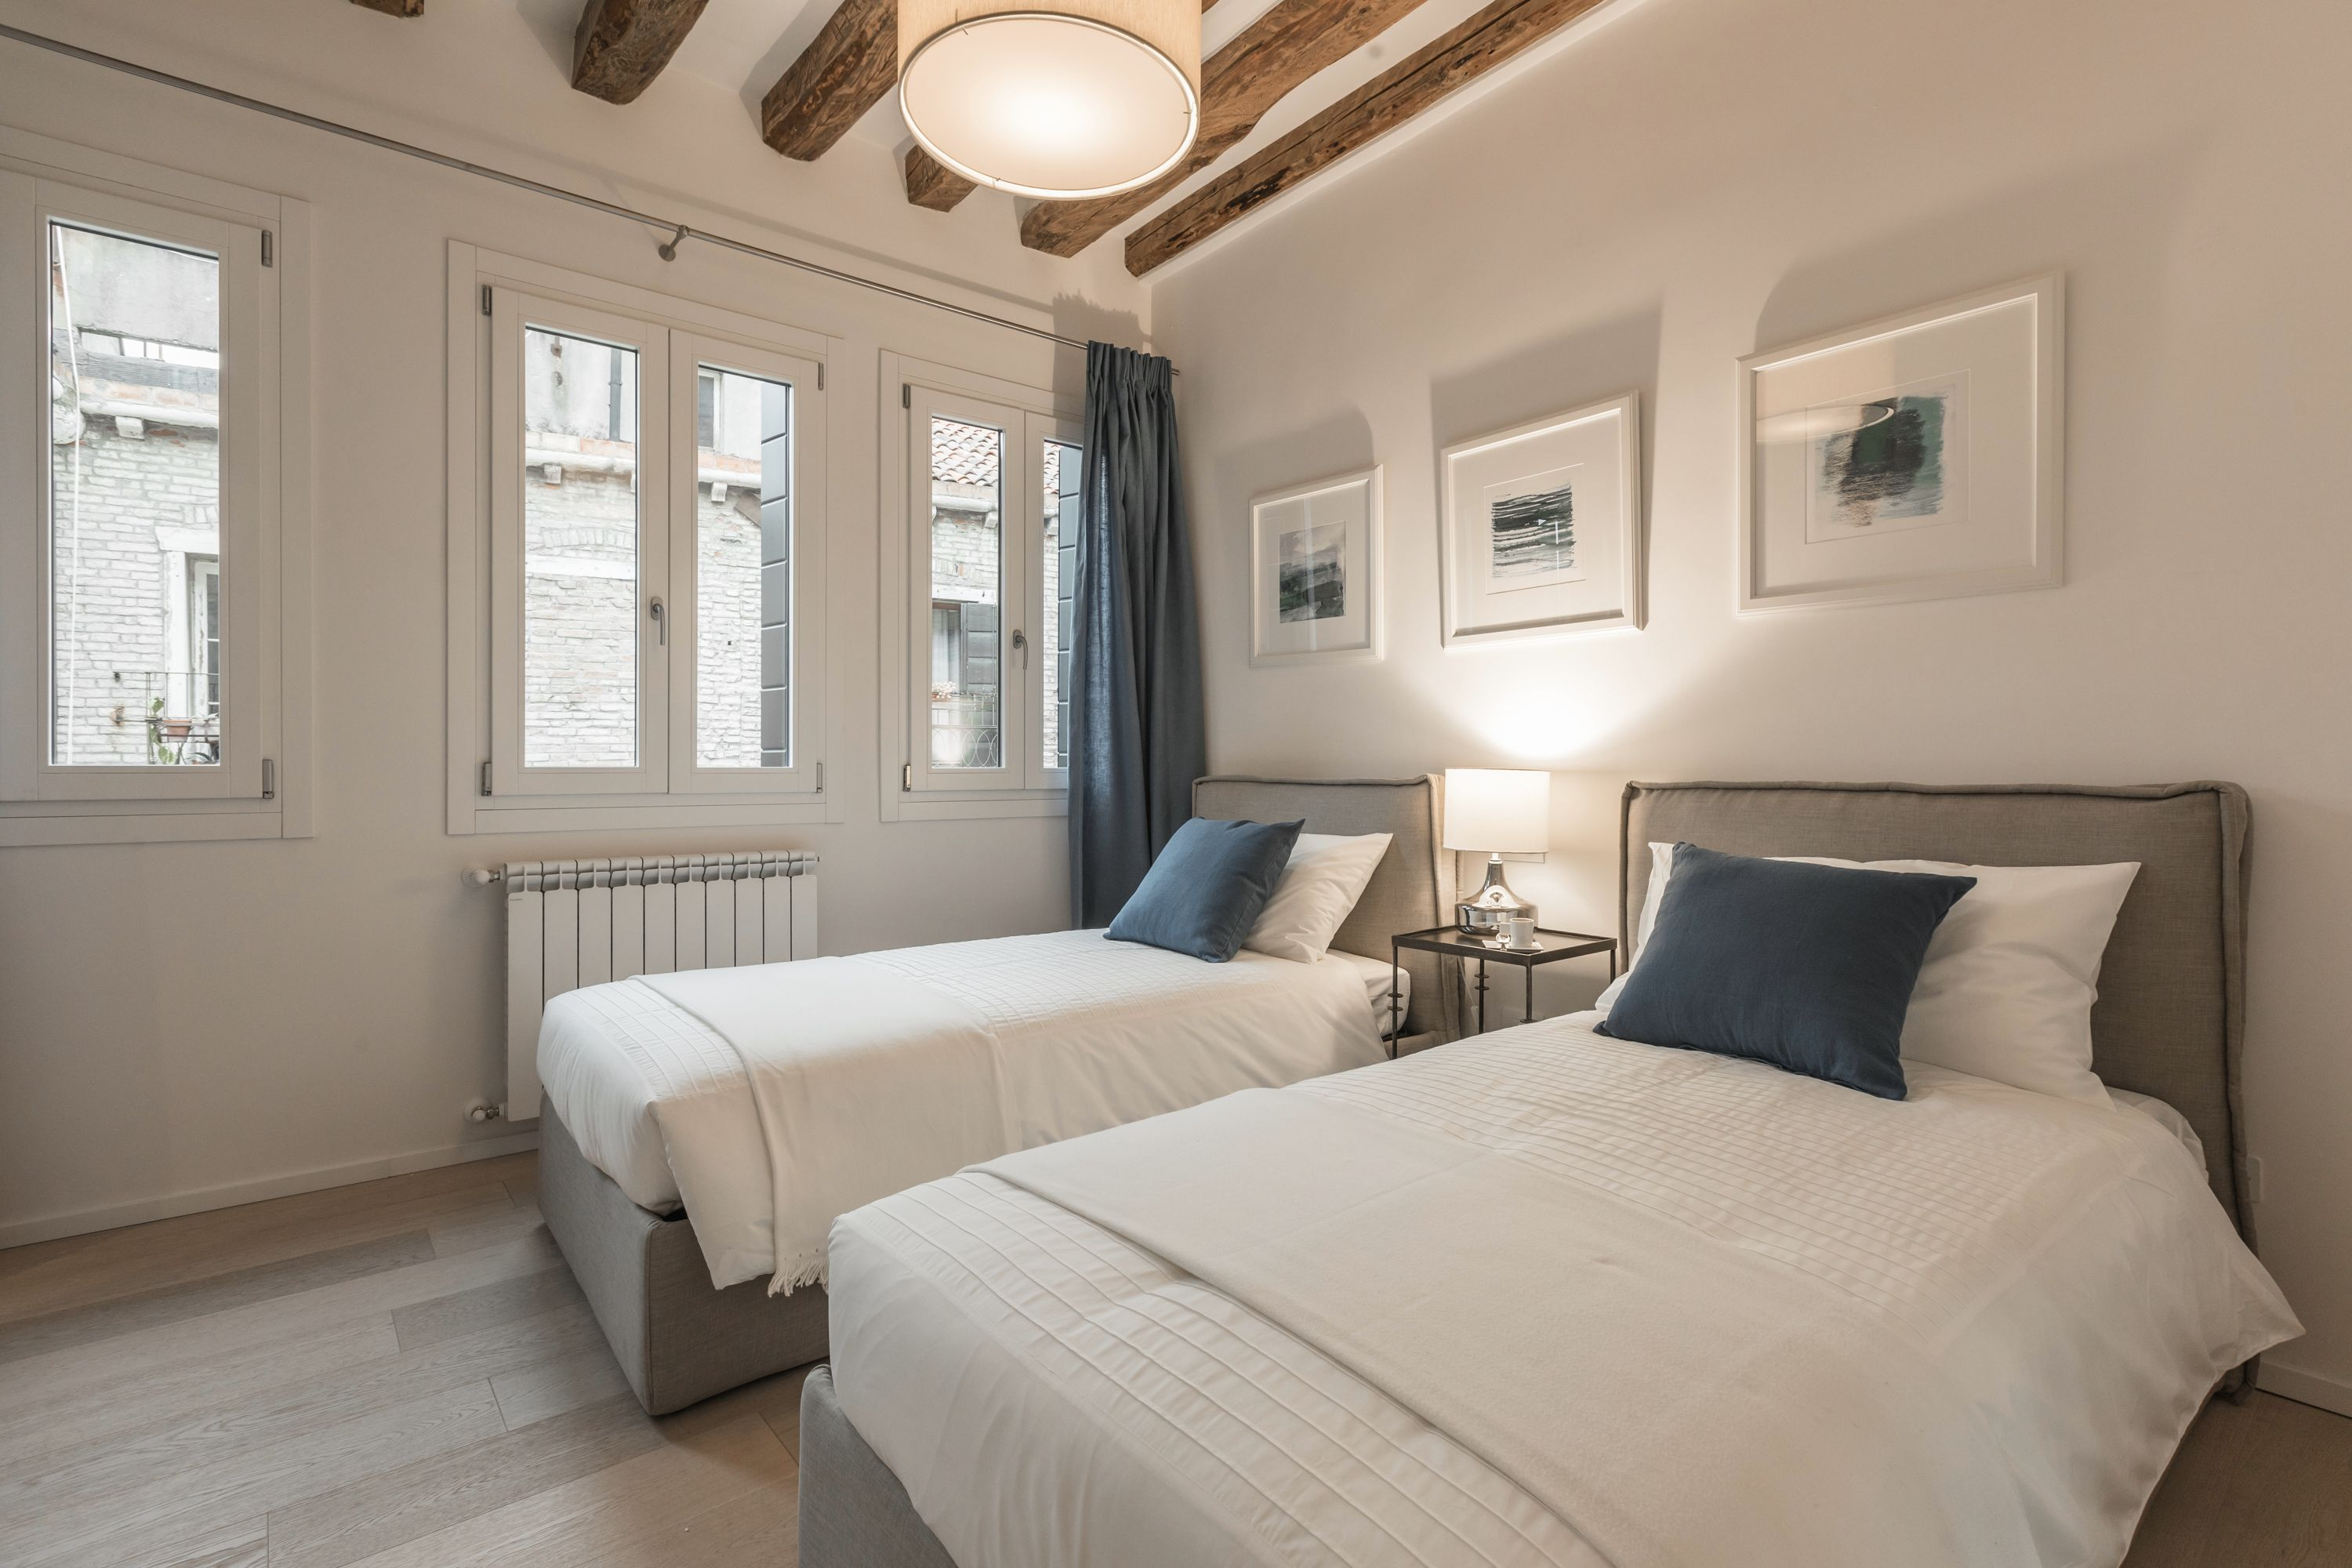 the second bedroom can be used as twin or double, on request